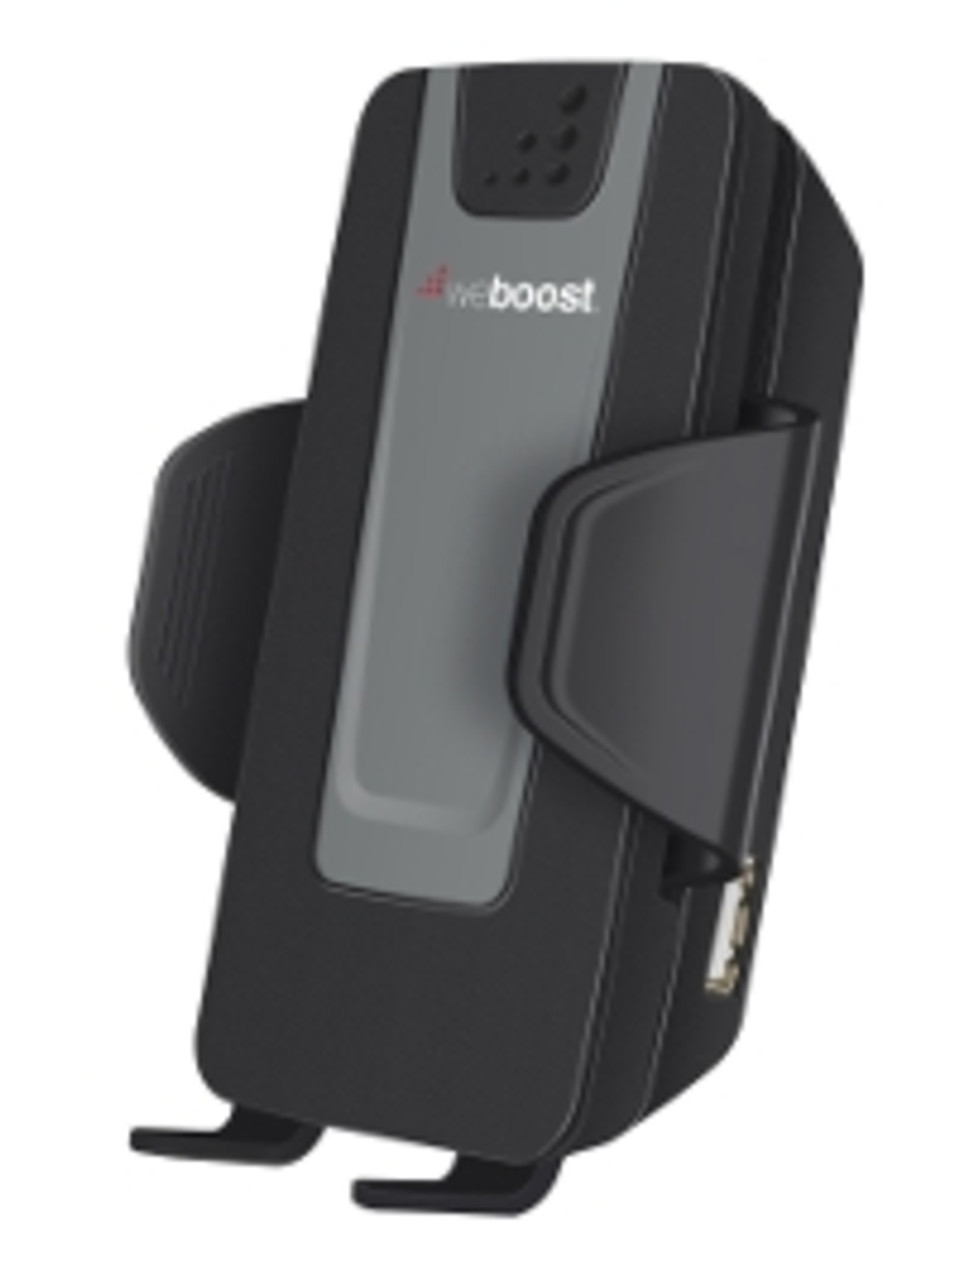 weBoost Drive S Mobile Cradle Boosters